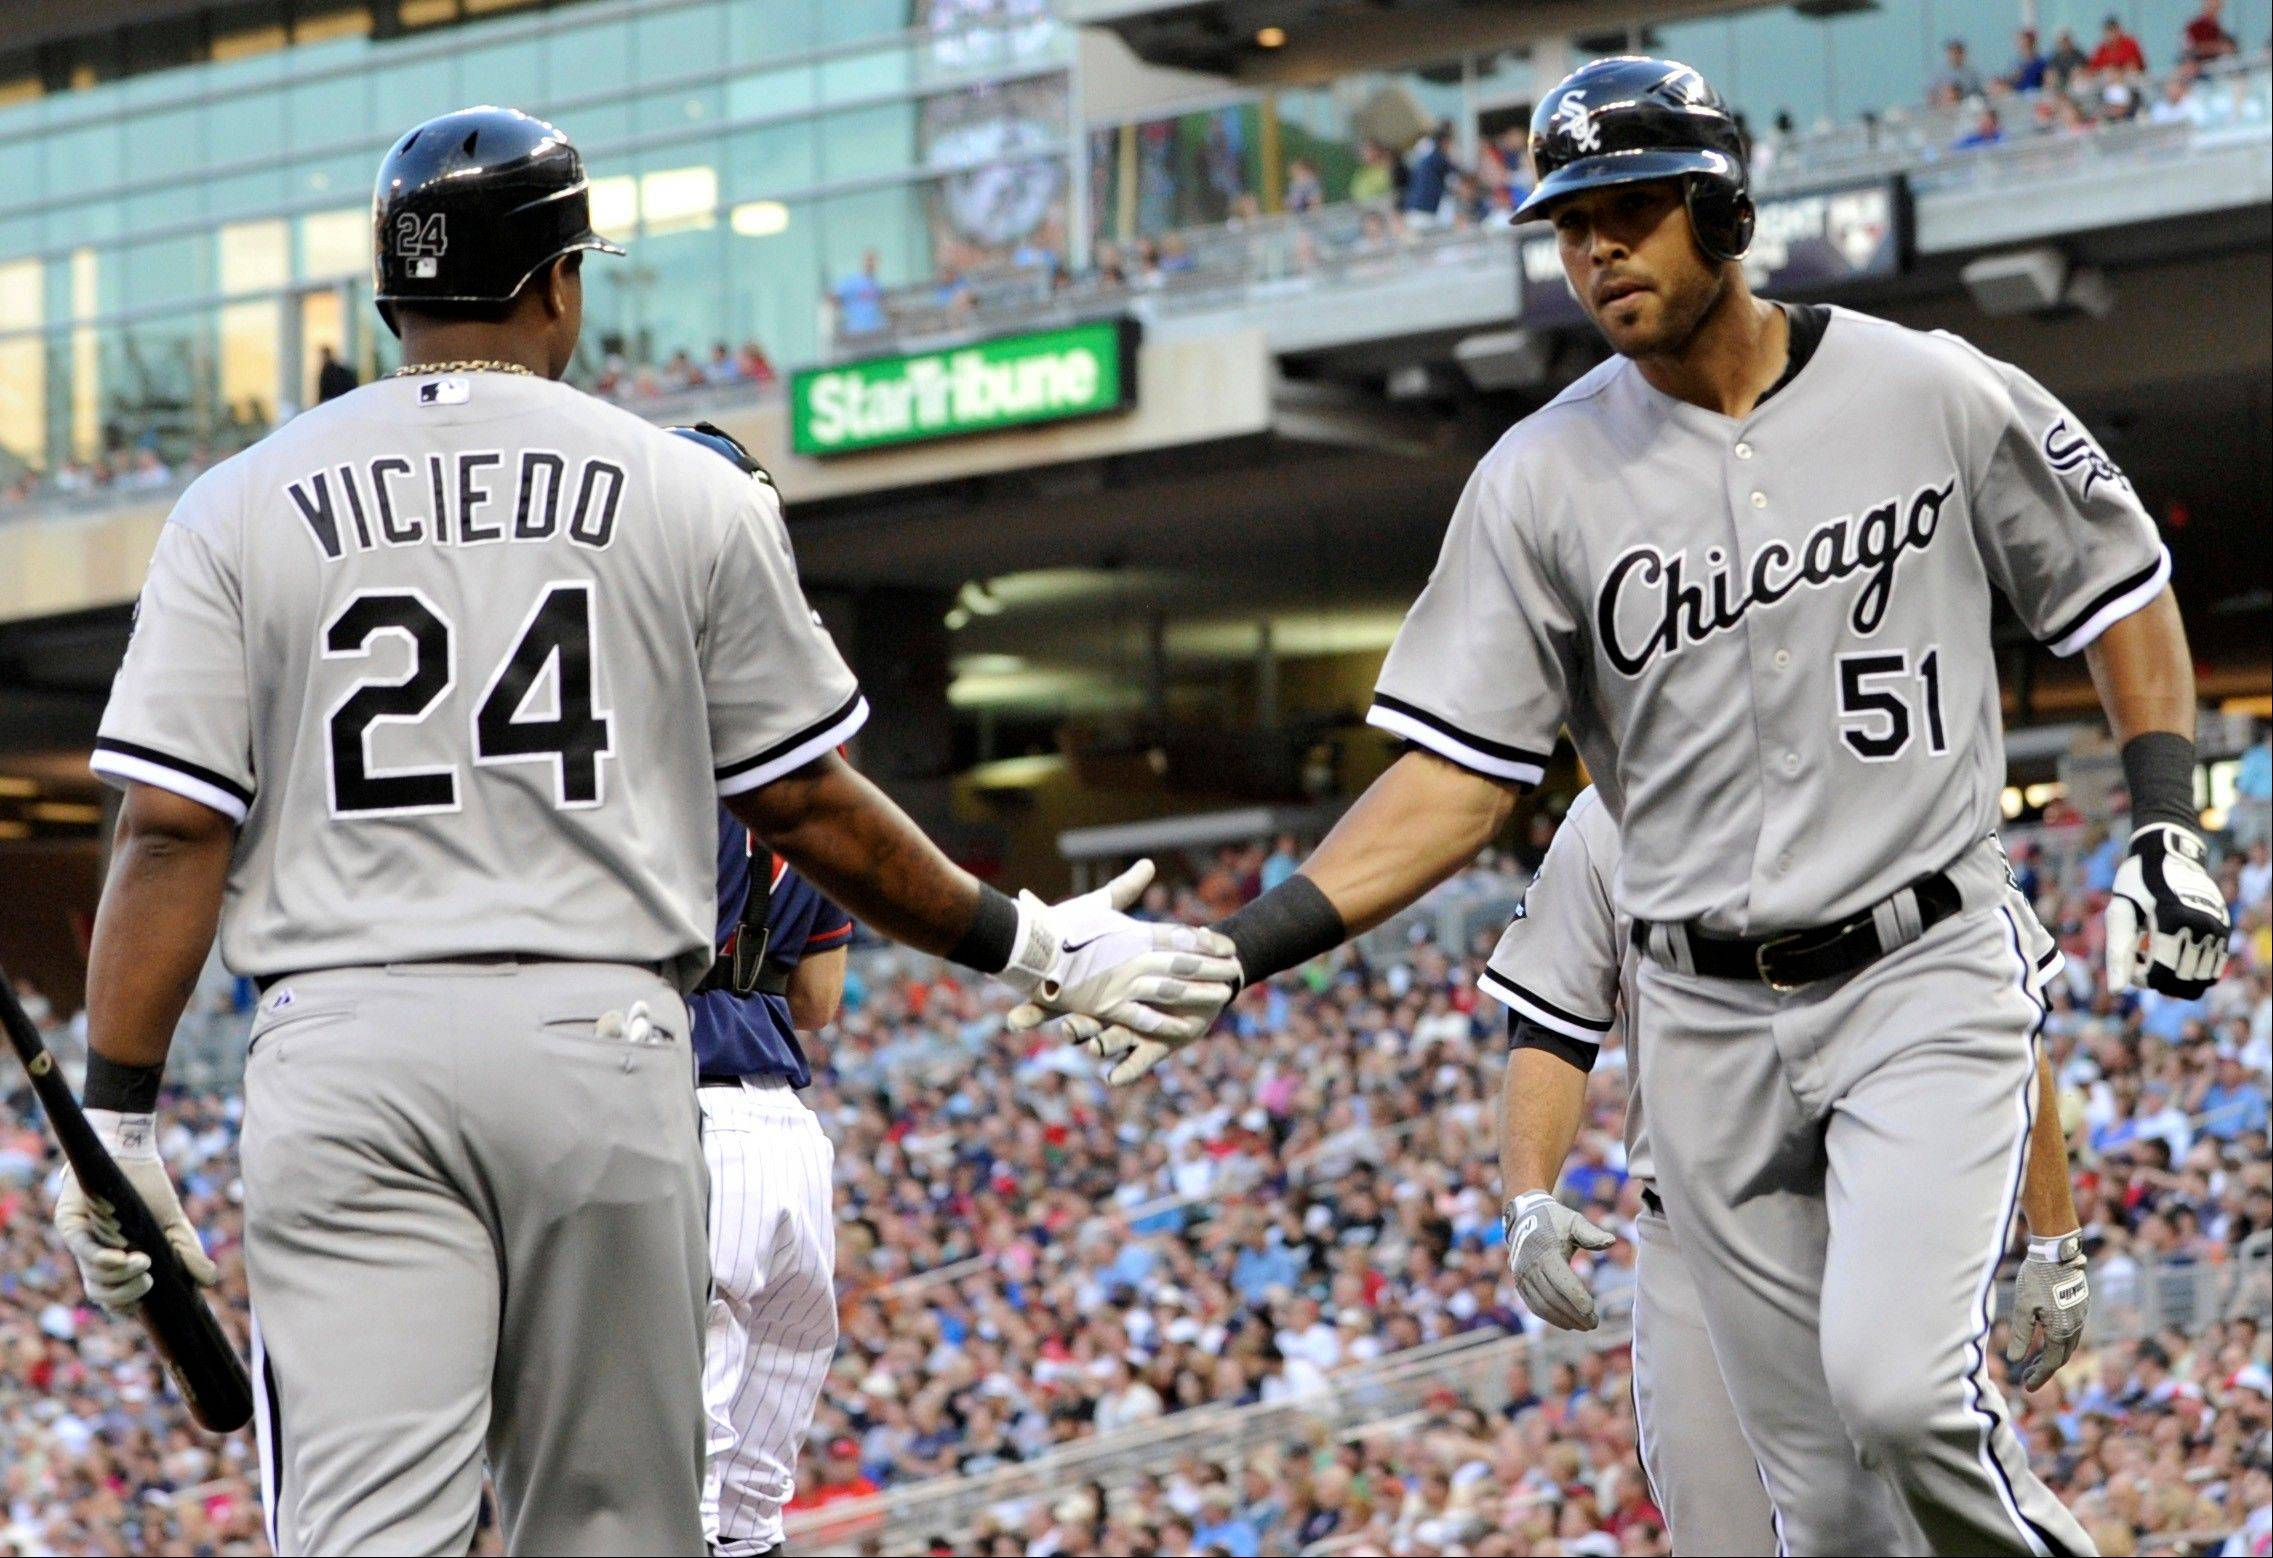 Chicago White Sox right fielder Alex Rios, right, is congratulated by Dayan Viciedo after hitting a two-run home run off Minnesota Twins pitcher Liam Hendriks Tuesday during the fourth inning.